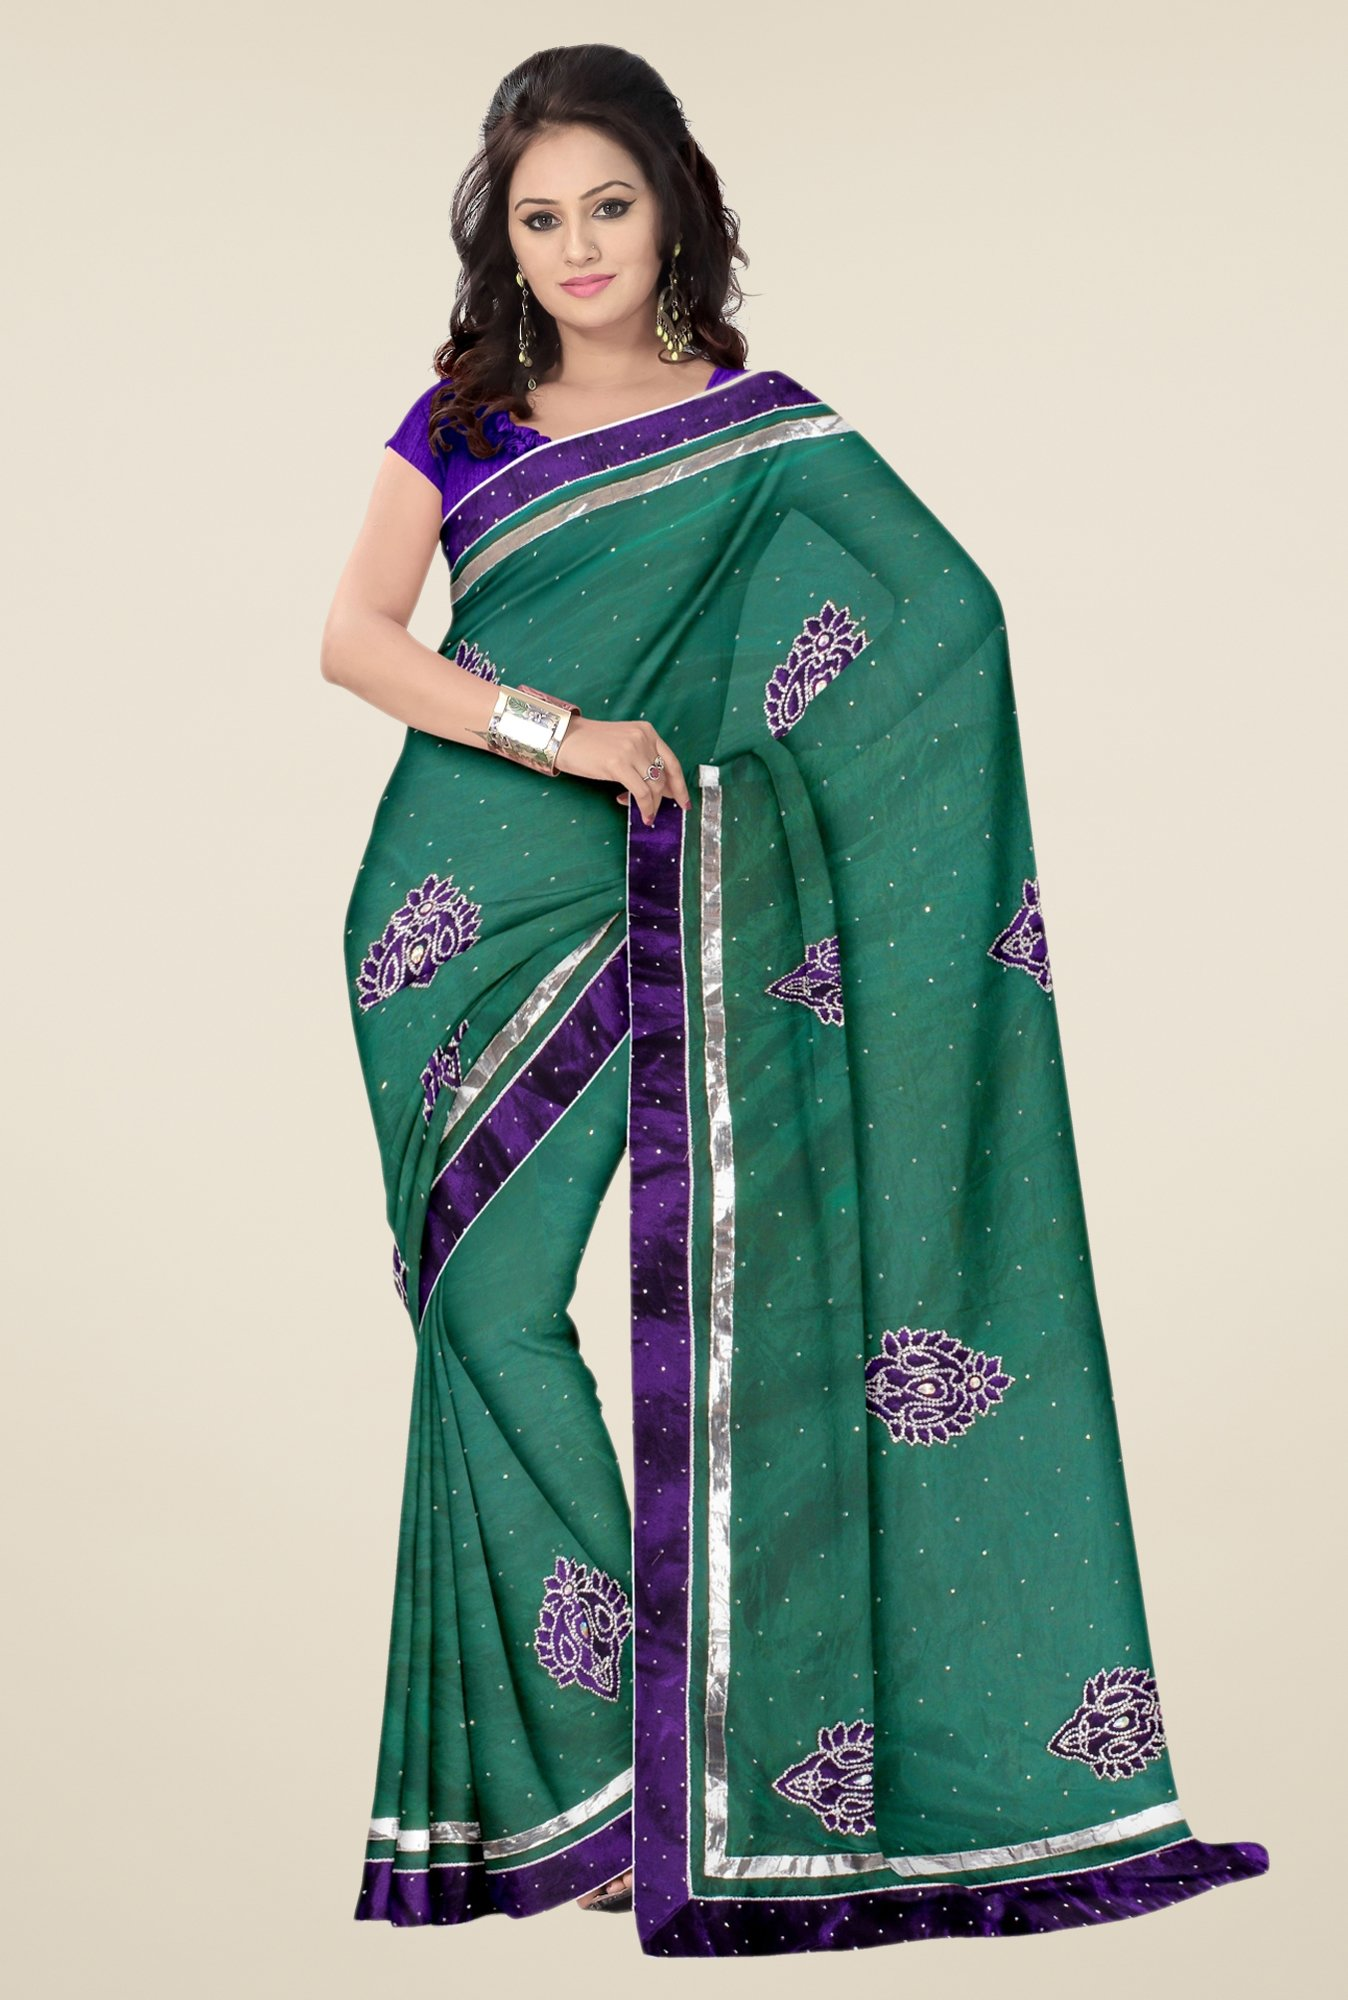 Triveni Sea Green Embroidered Net Saree